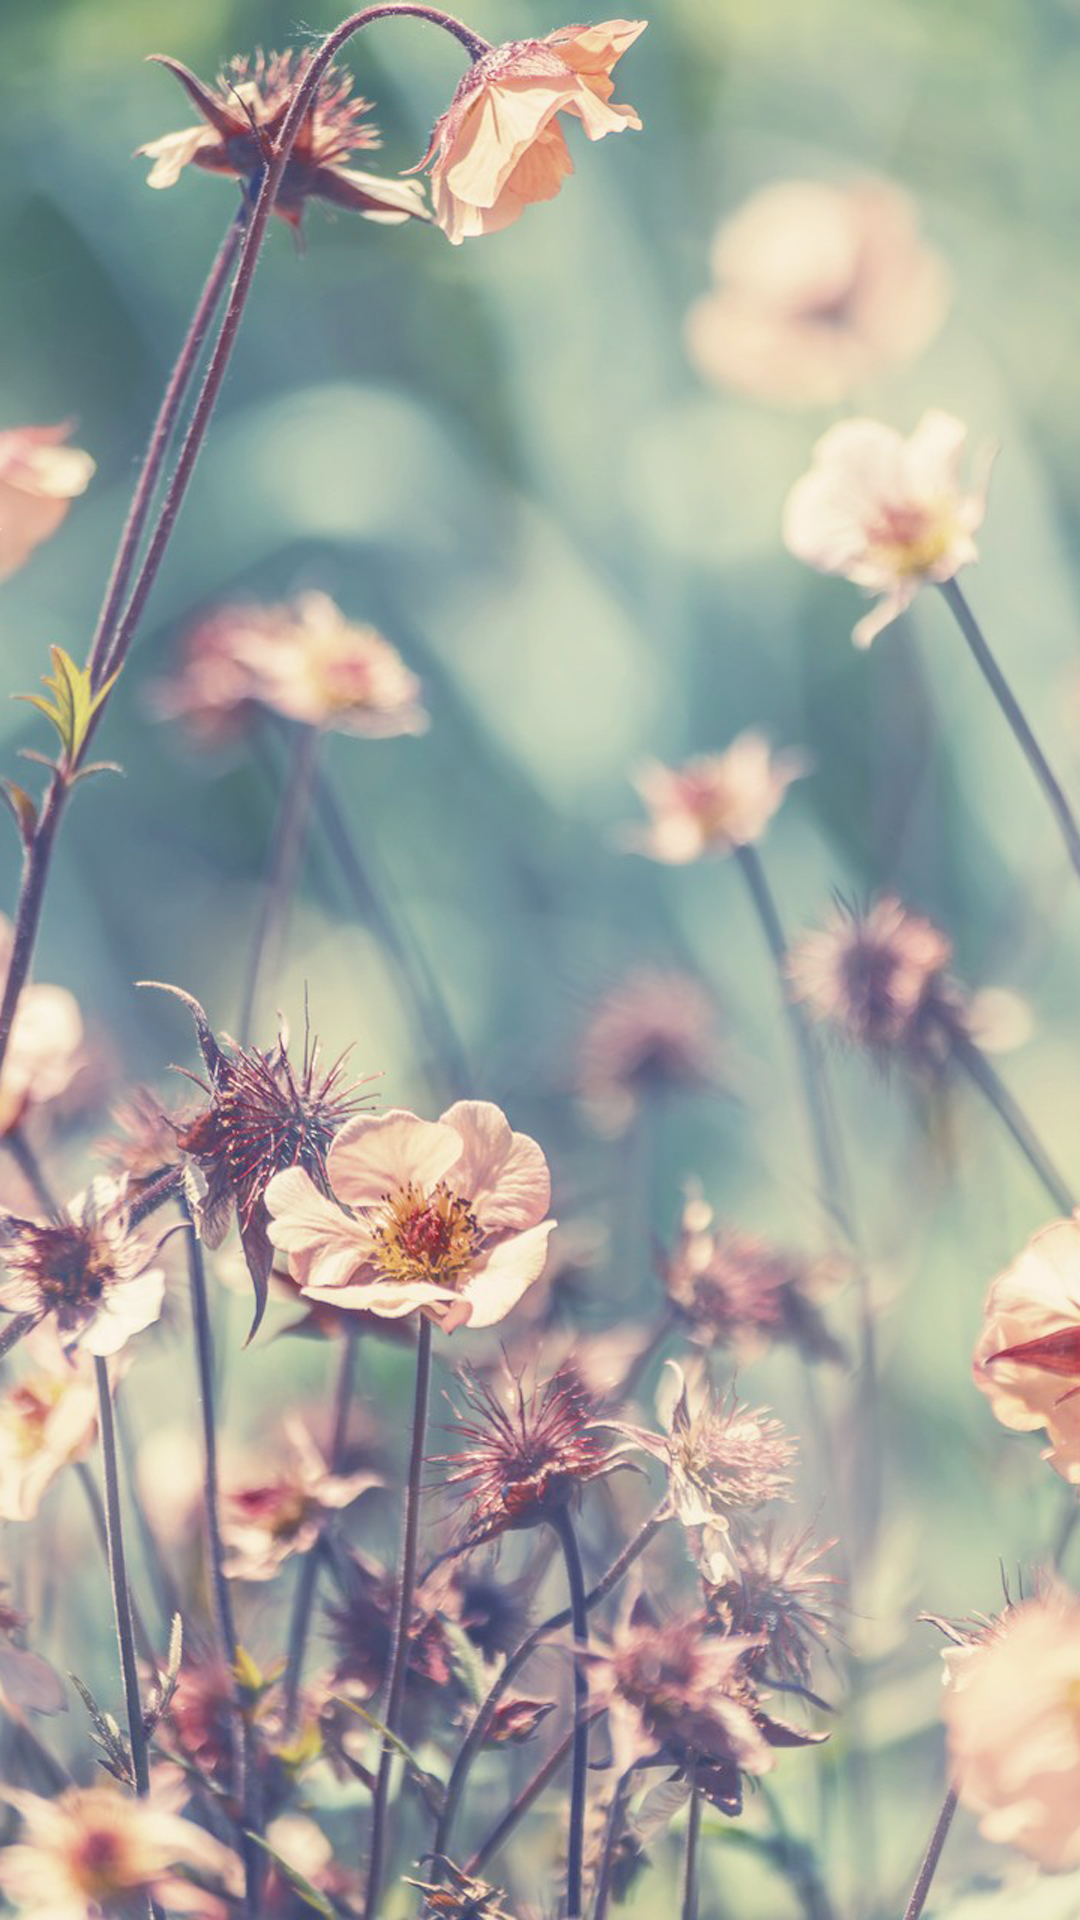 Download phone wallpapers flowers gallery - Flower wallpaper for your phone ...